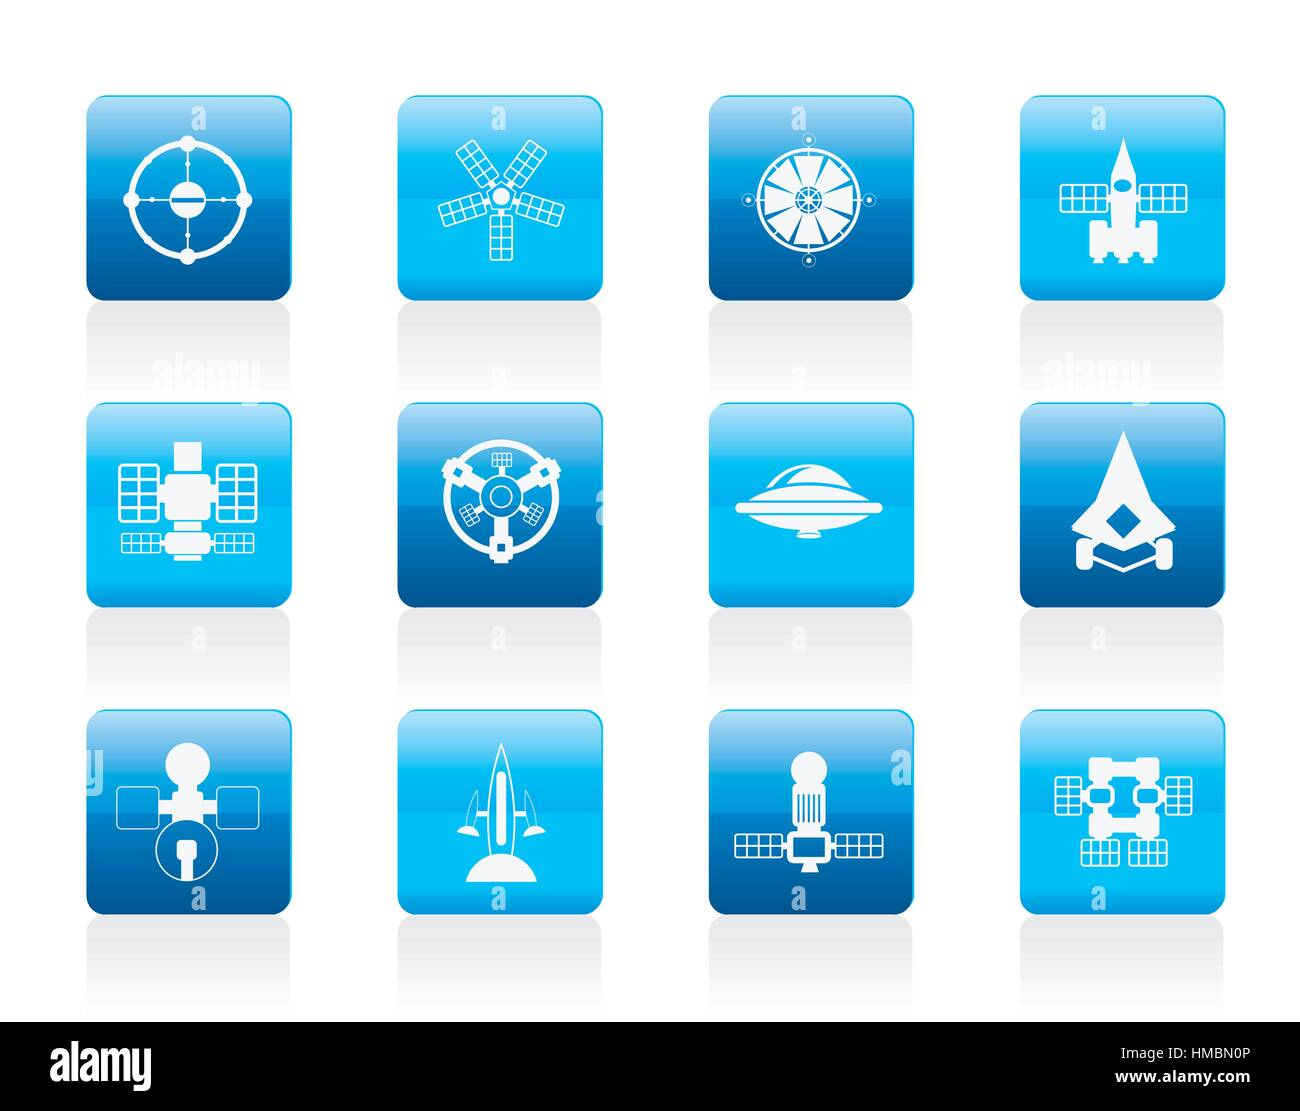 different kinds of future spacecraft icons - Stock Image